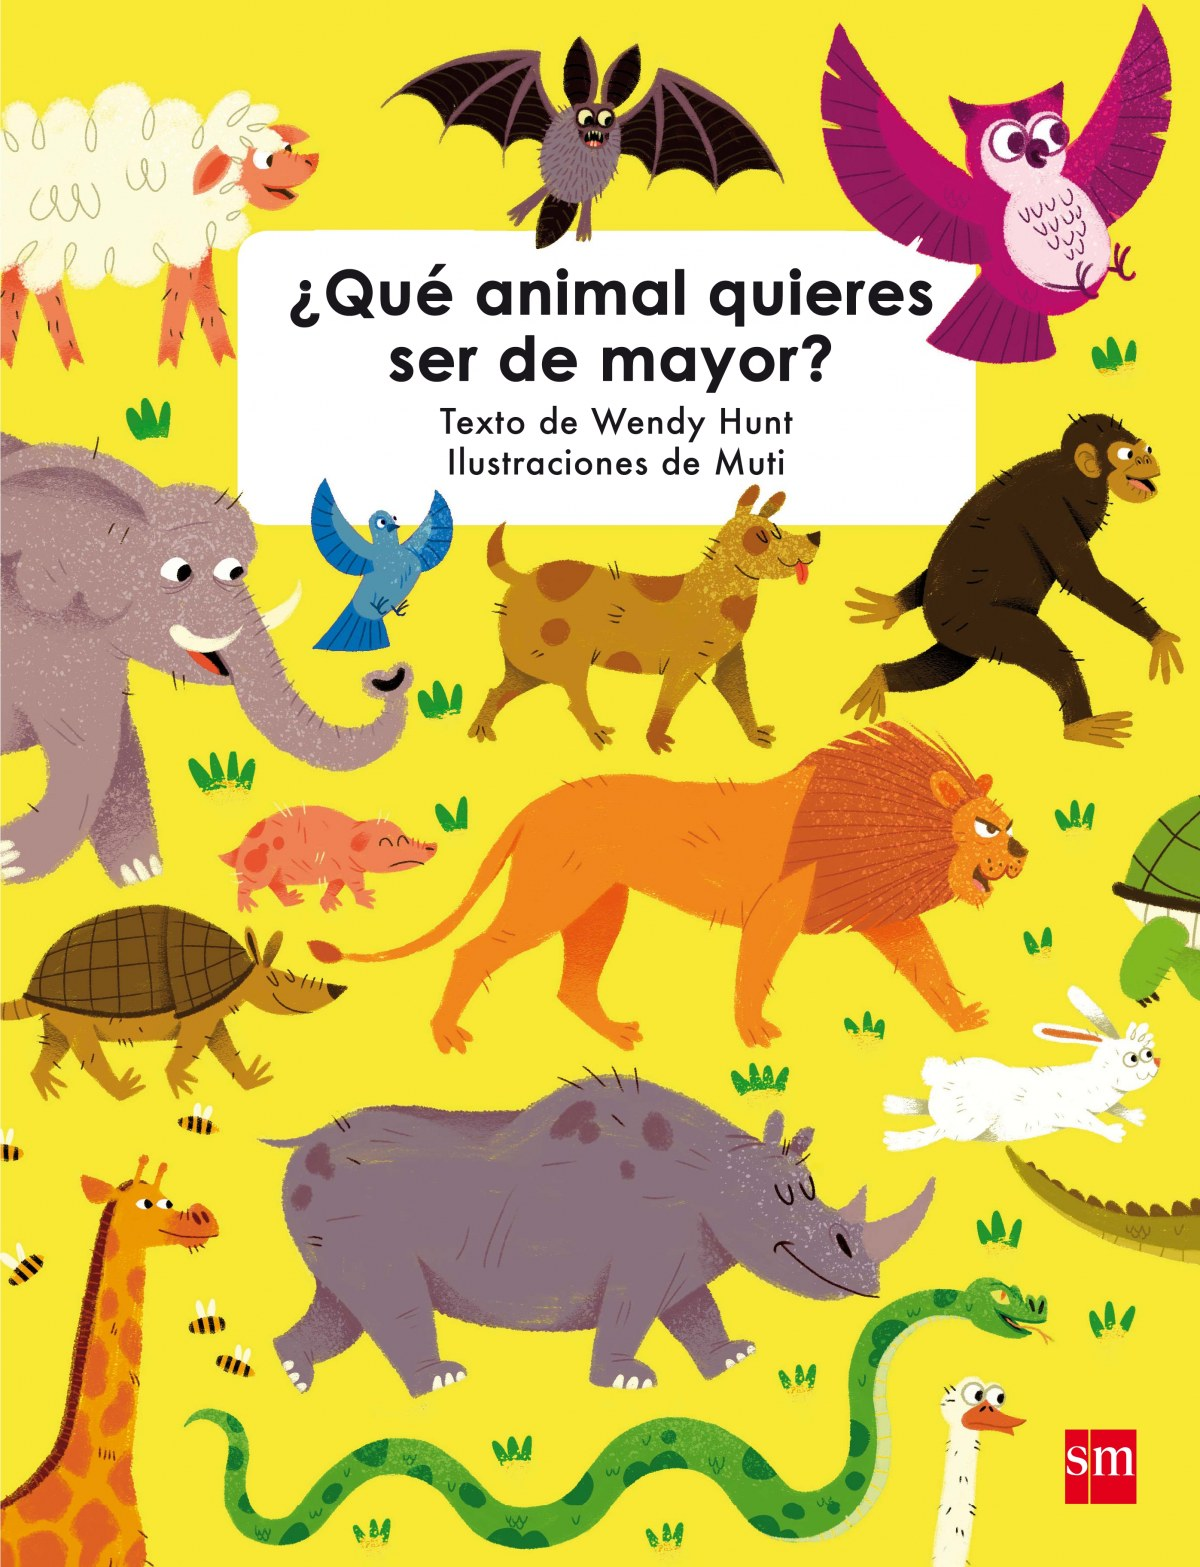 QUE ANIMAL QUIERES SER DE MAYOR